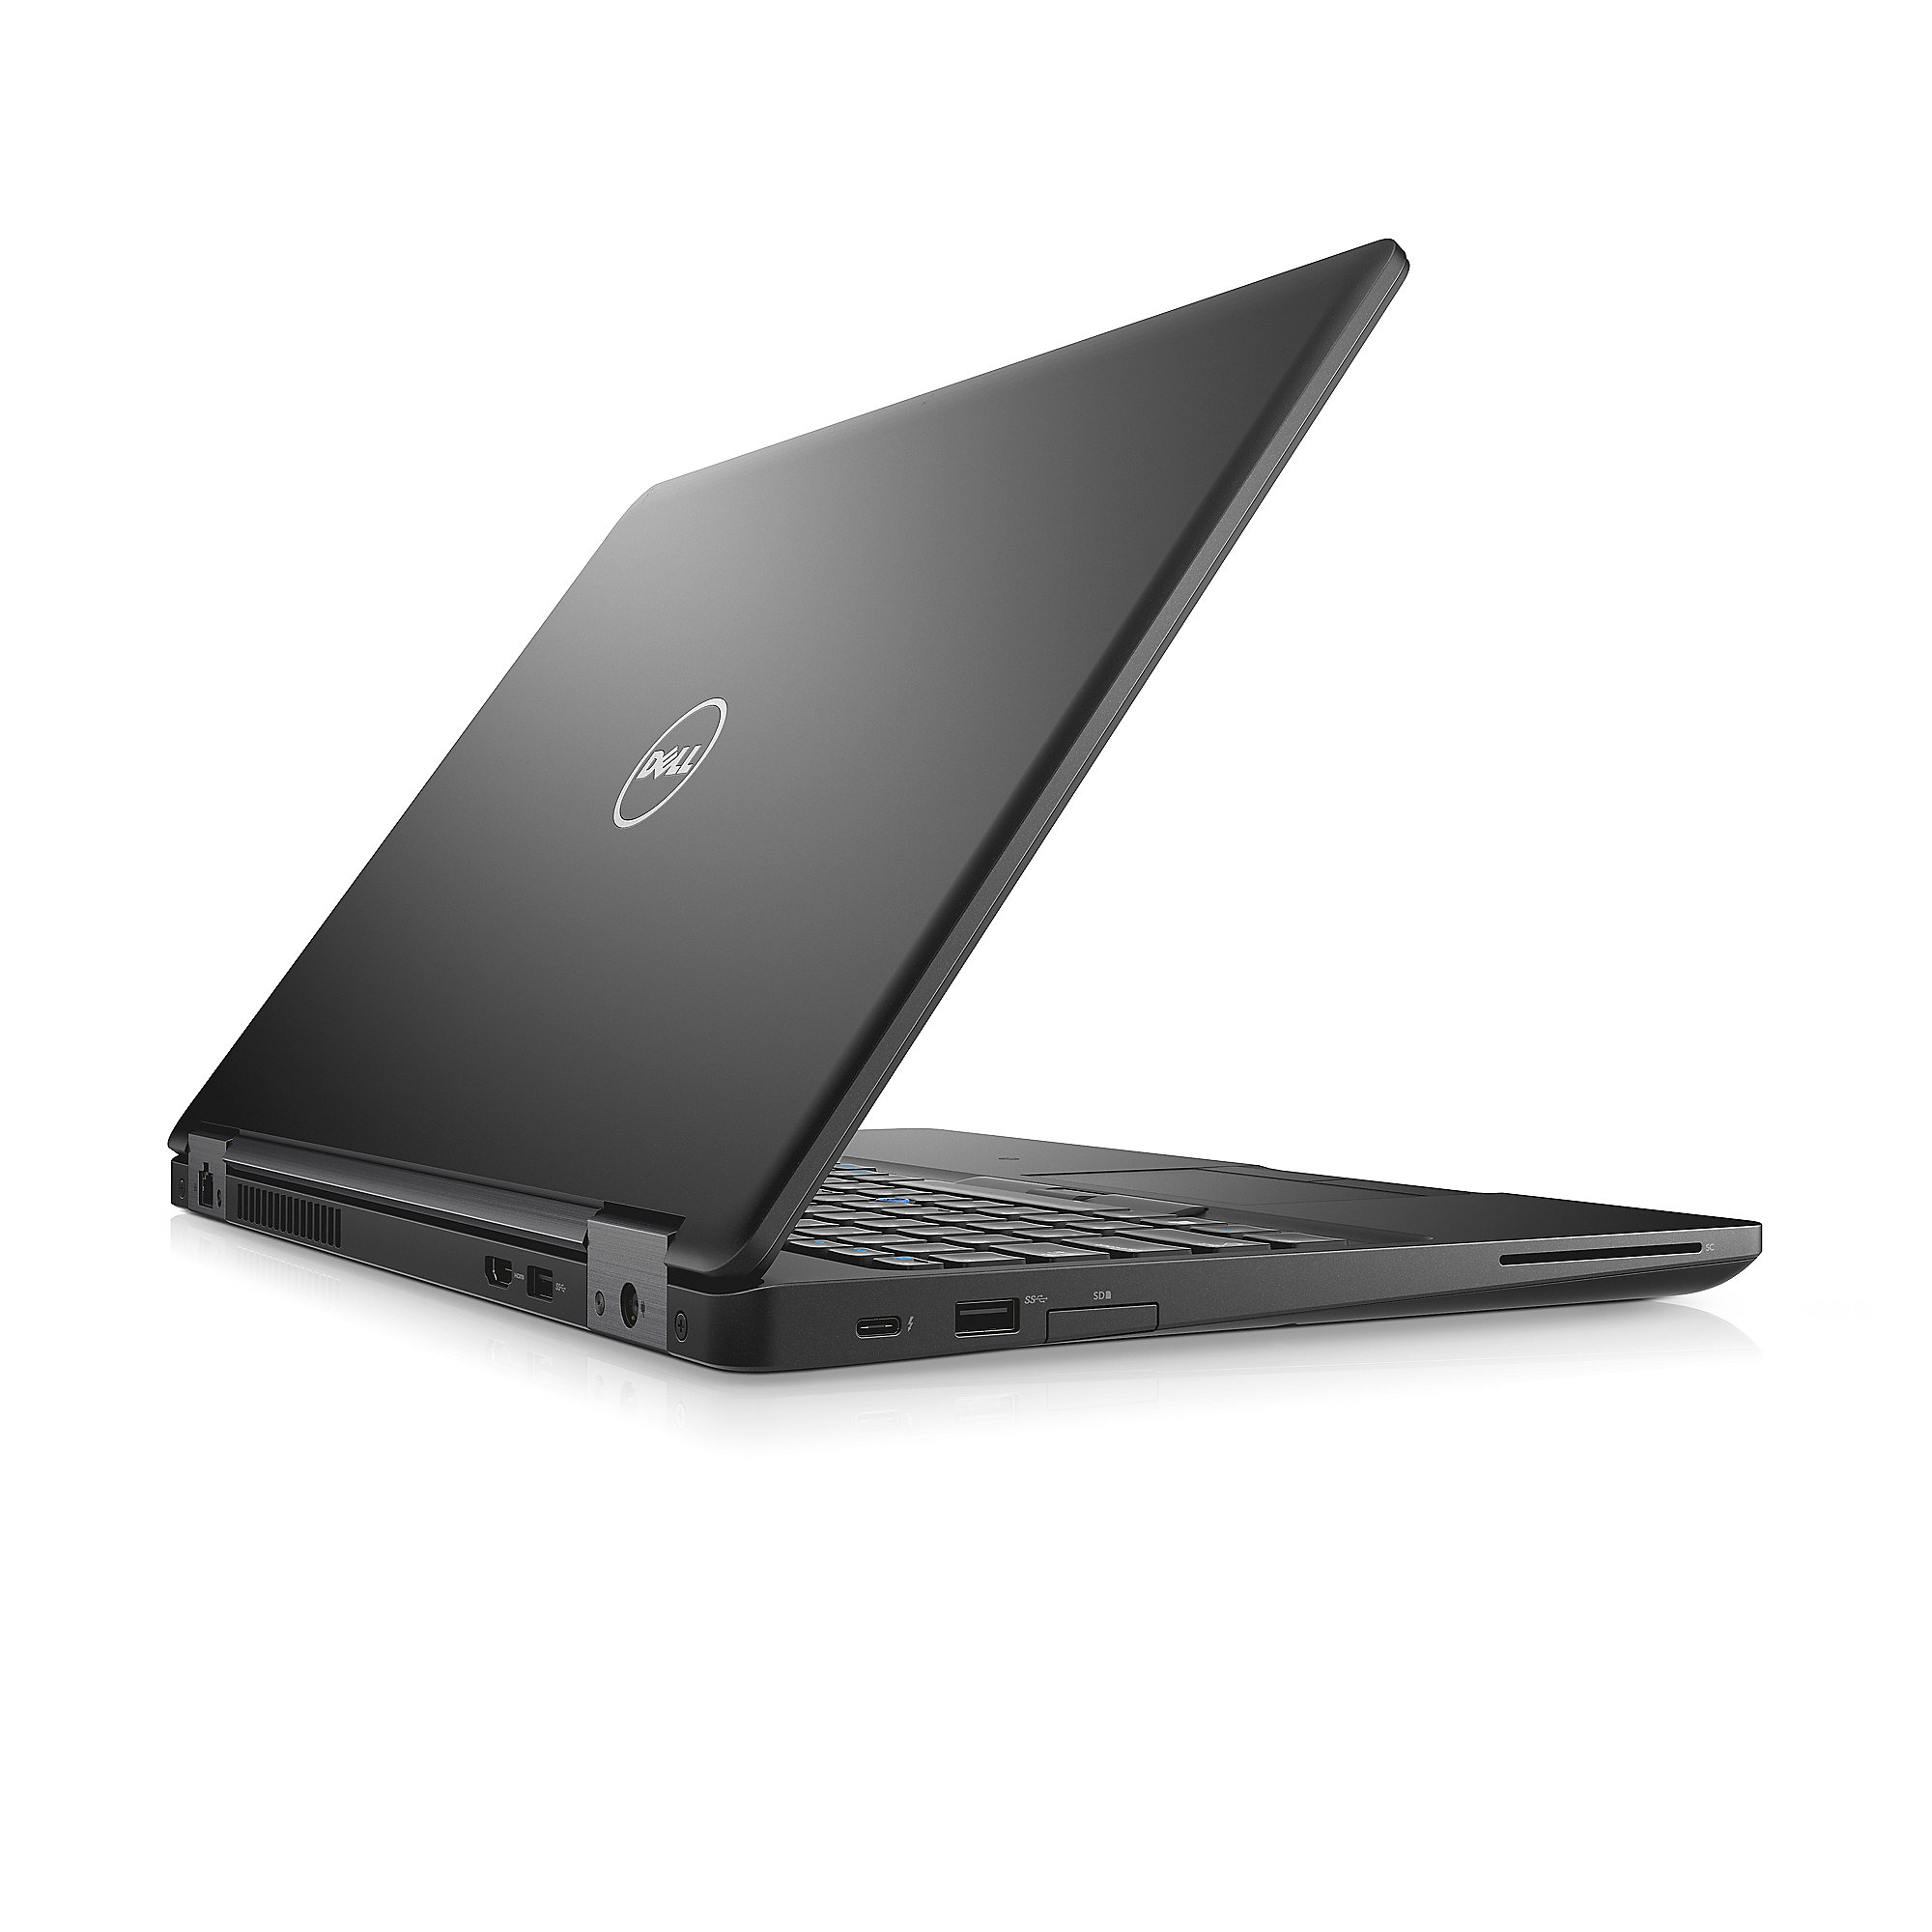 "DELL Precision M3520 - i5-6440HQ 8GB/256GB SSD 15""FHD Quardro M620 Win7/10P"